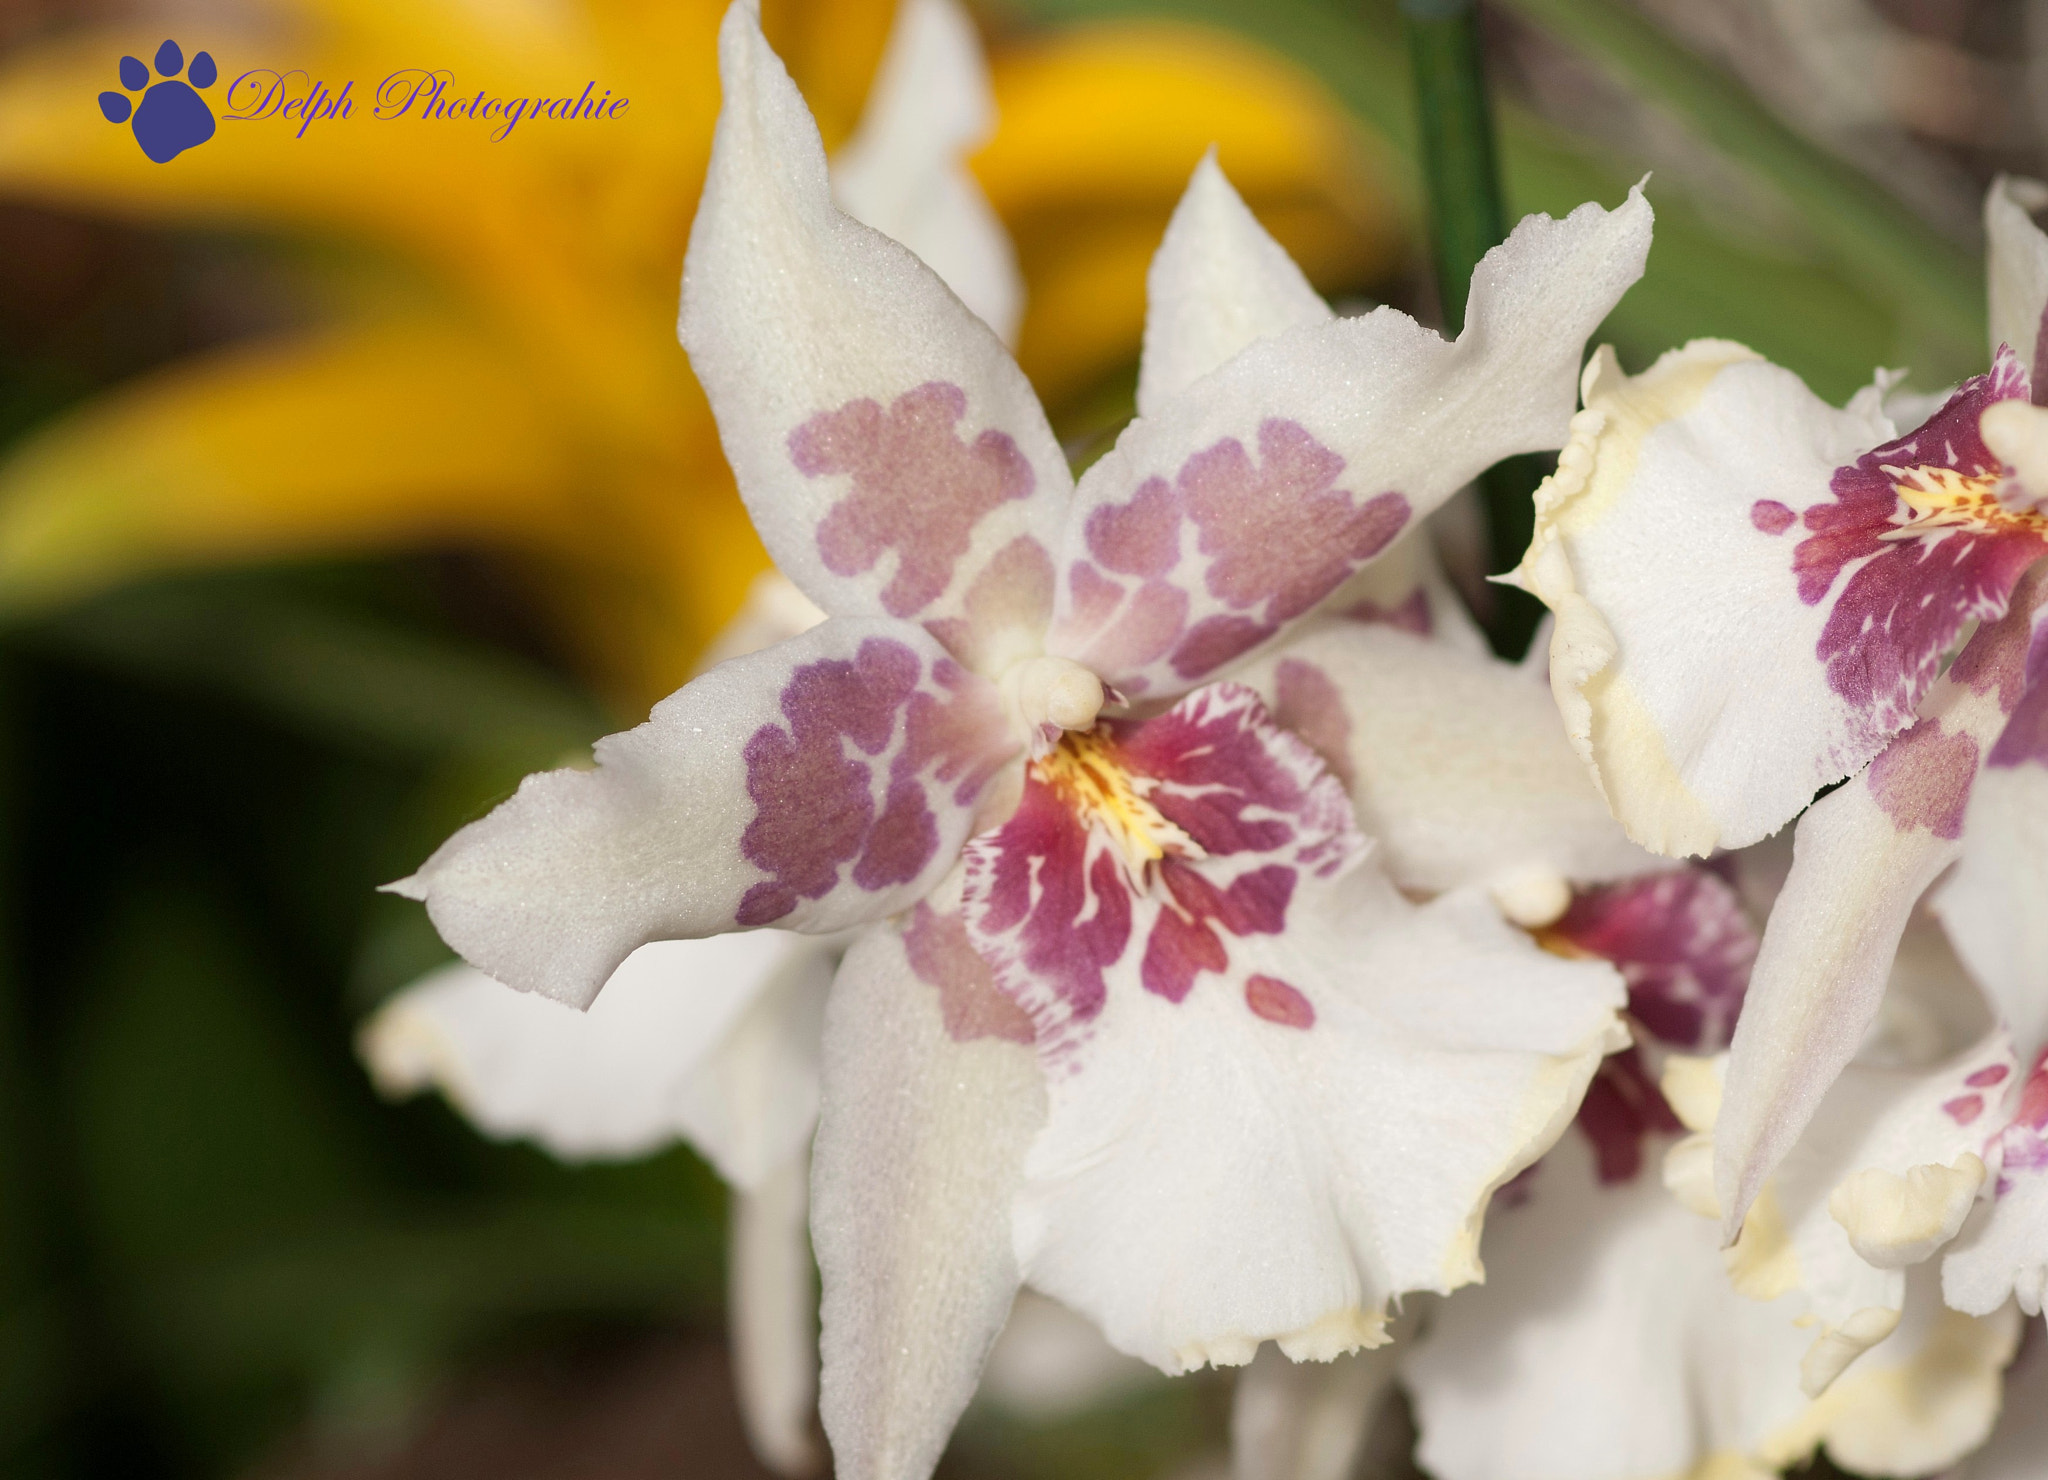 Photograph orchidée blanche/mauve by Delphine Melin Scholl on 500px